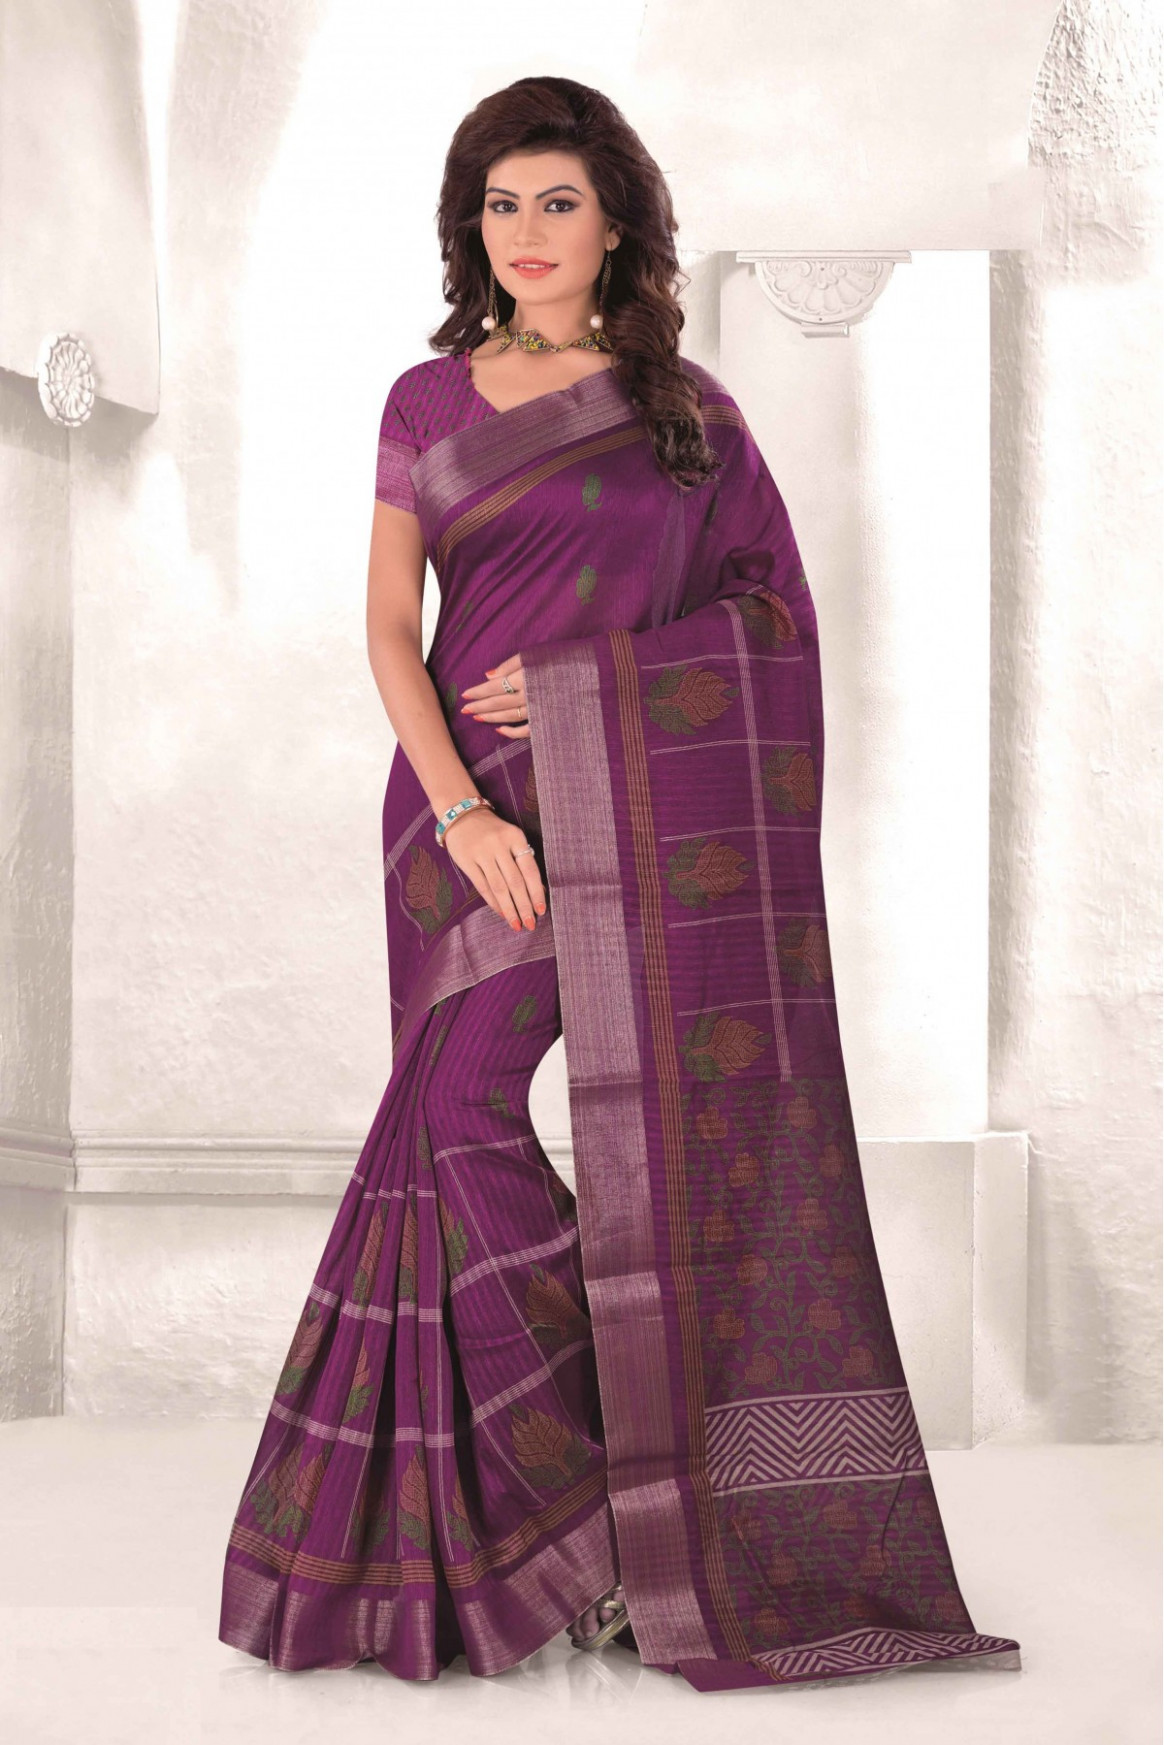 Mysore Udyog Casual Wear Saree in Magenta Colour